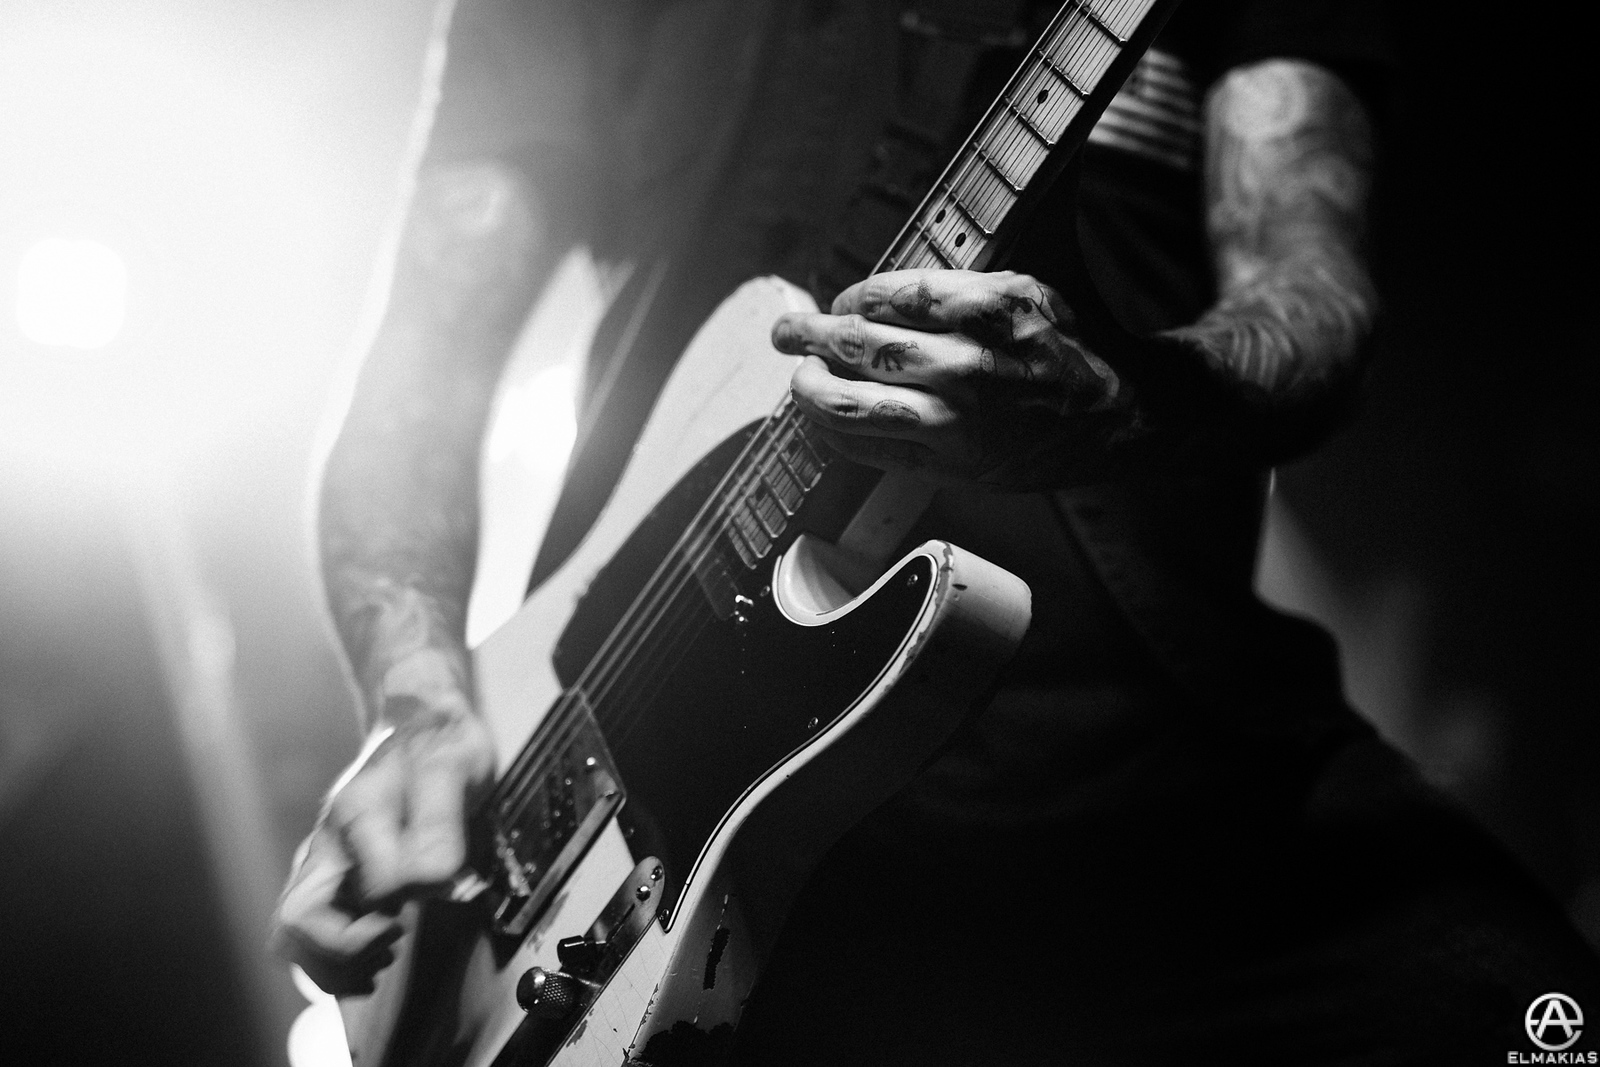 Jack Fowler of Sleeping With Sirens